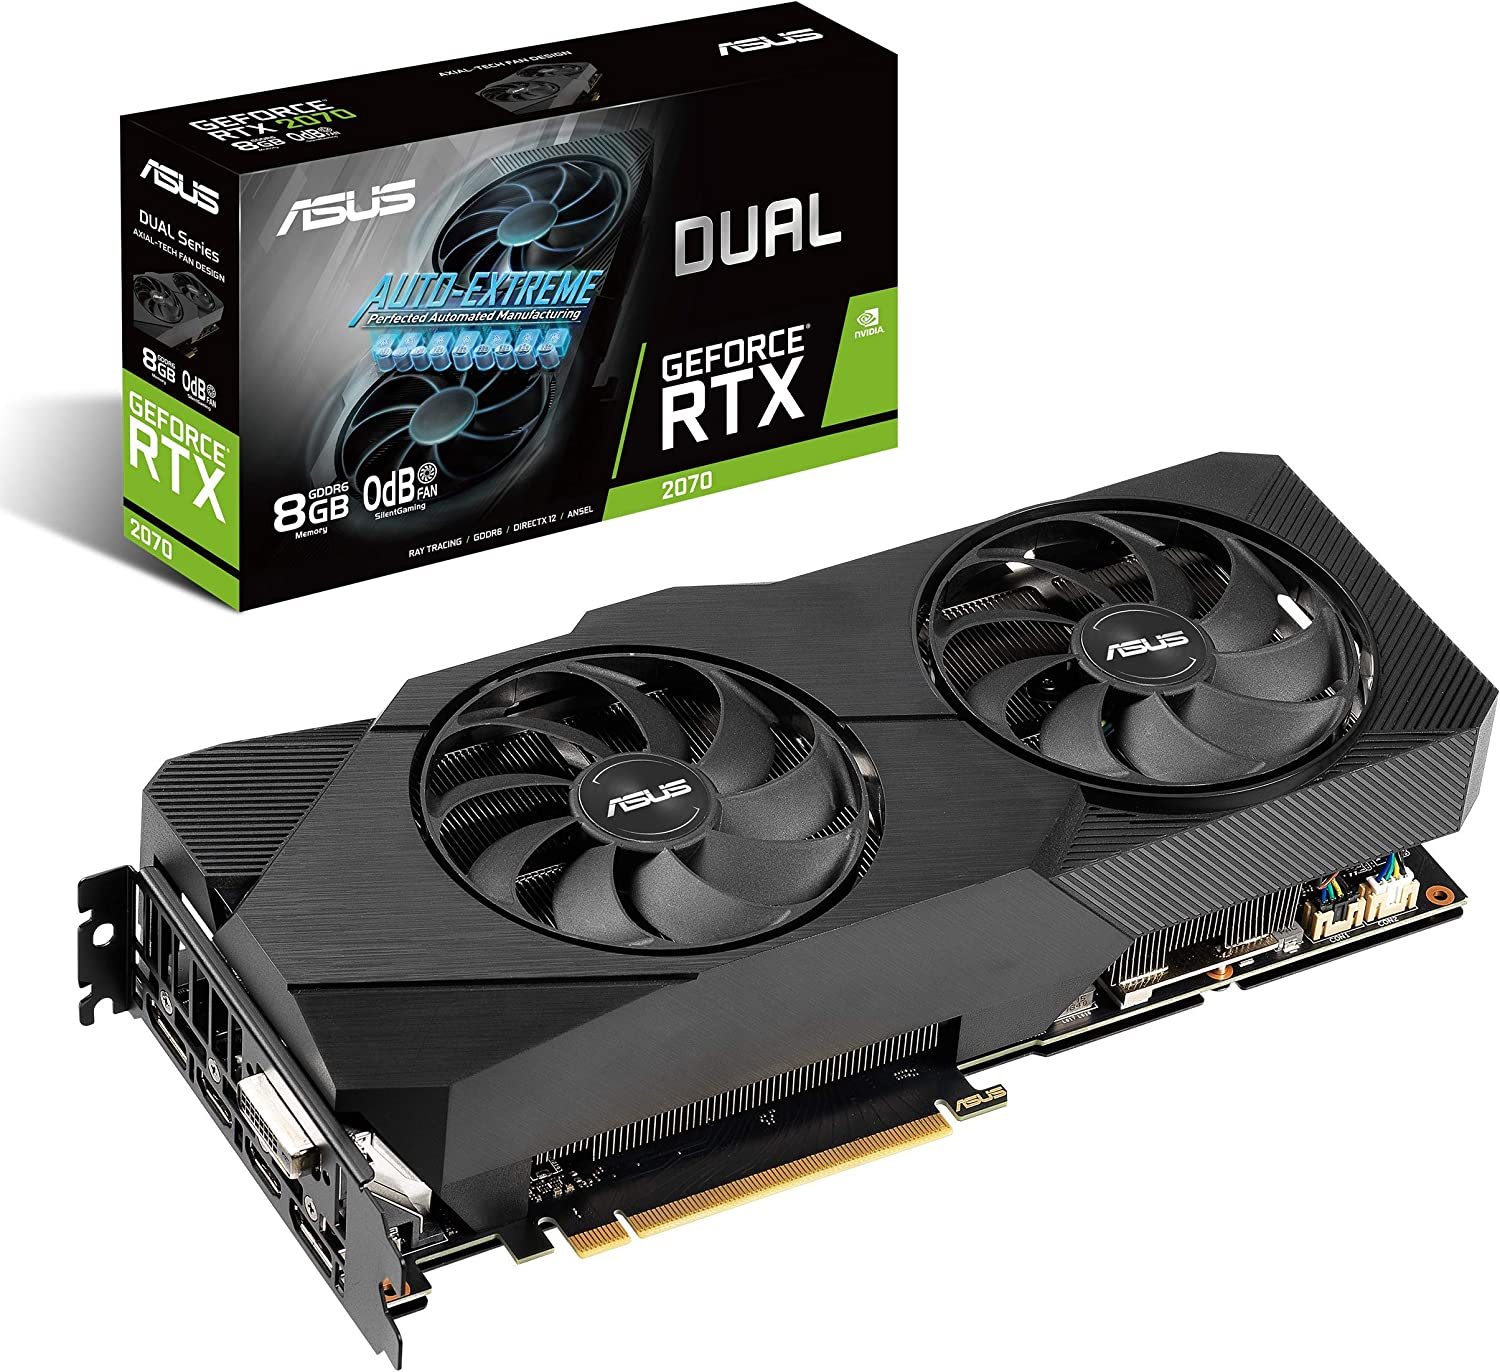 ASUS Dual NVIDIA GeForce RTX 2070 EVO V2 OC Edition Gaming Graphics Card (PCIe 3.0, 8GB GDDR6 memory, HDMI, DisplayPort, DVI-D, Axial-tech fan, 0dB technology, DirectCU II, Auto-Extreme) (DUAL-RTX2070